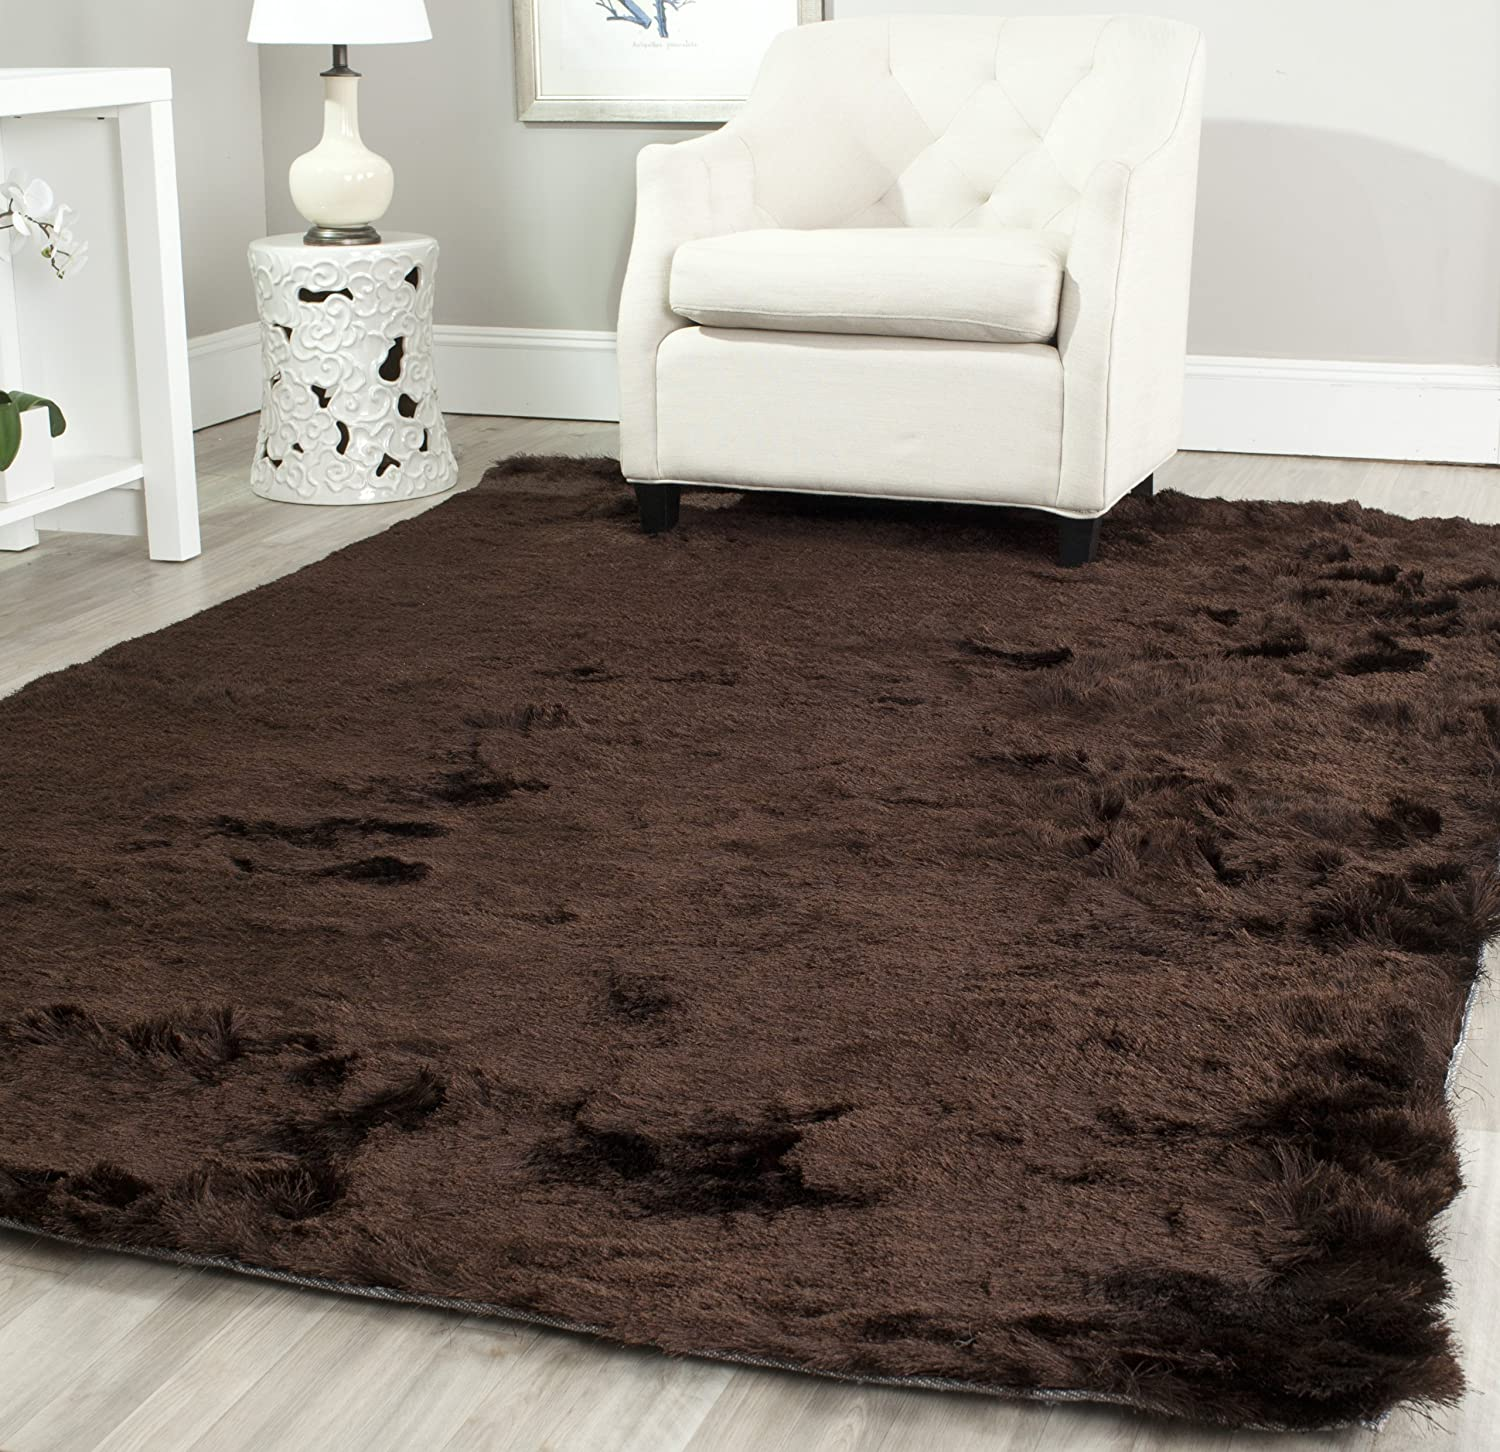 Marvelous Amazon.com: Safavieh Paris Shag Collection SG511 2727 Chocolate Polyester  Area Rug (5u0027 X 7u0027): Kitchen U0026 Dining